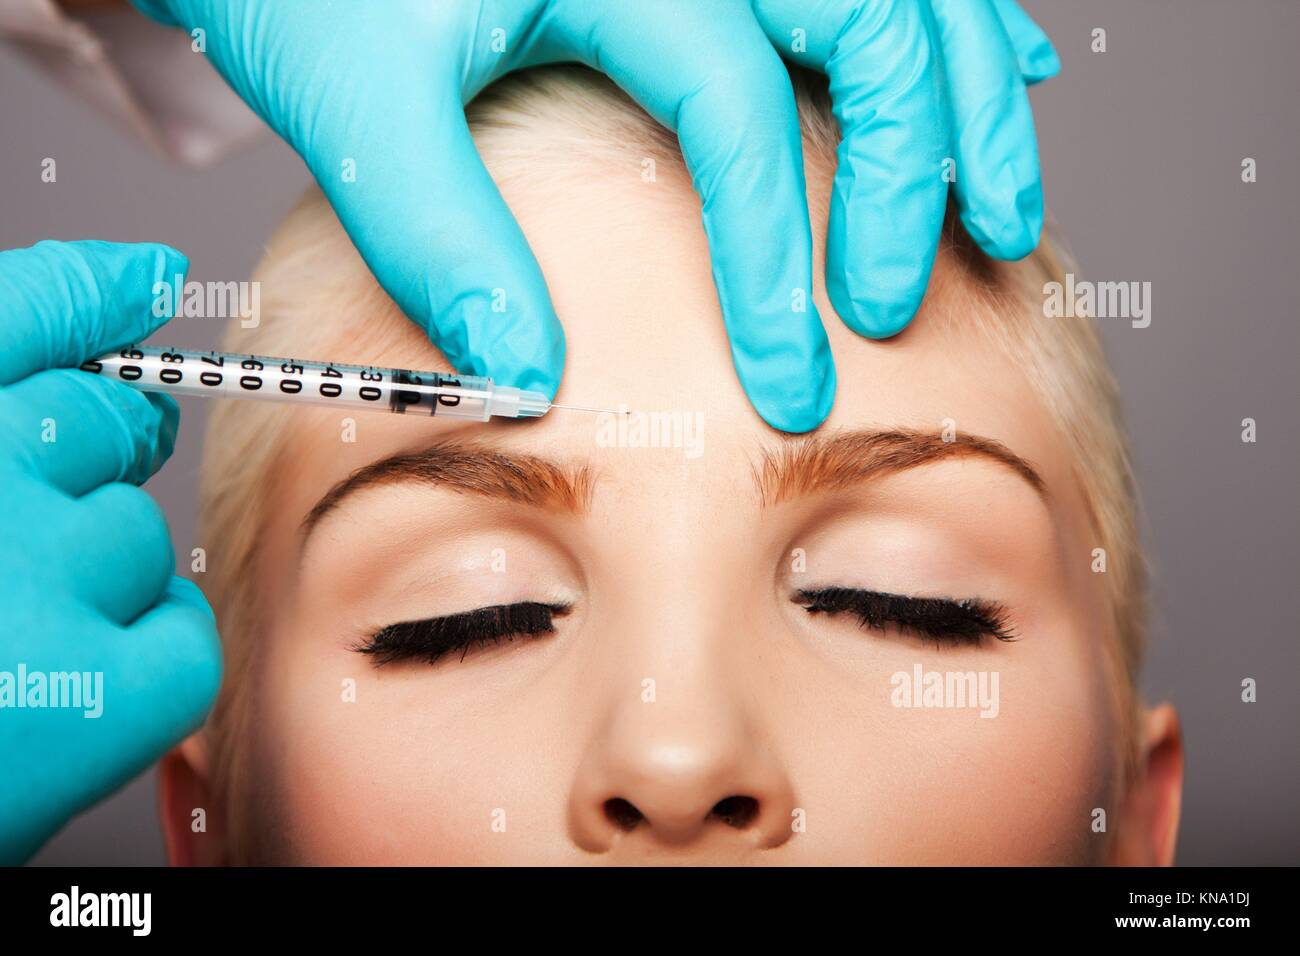 Beautiful face of young woman for Aesthetics facial skincare concept anti-wrinkle forehead botox restylane injection - Stock Image